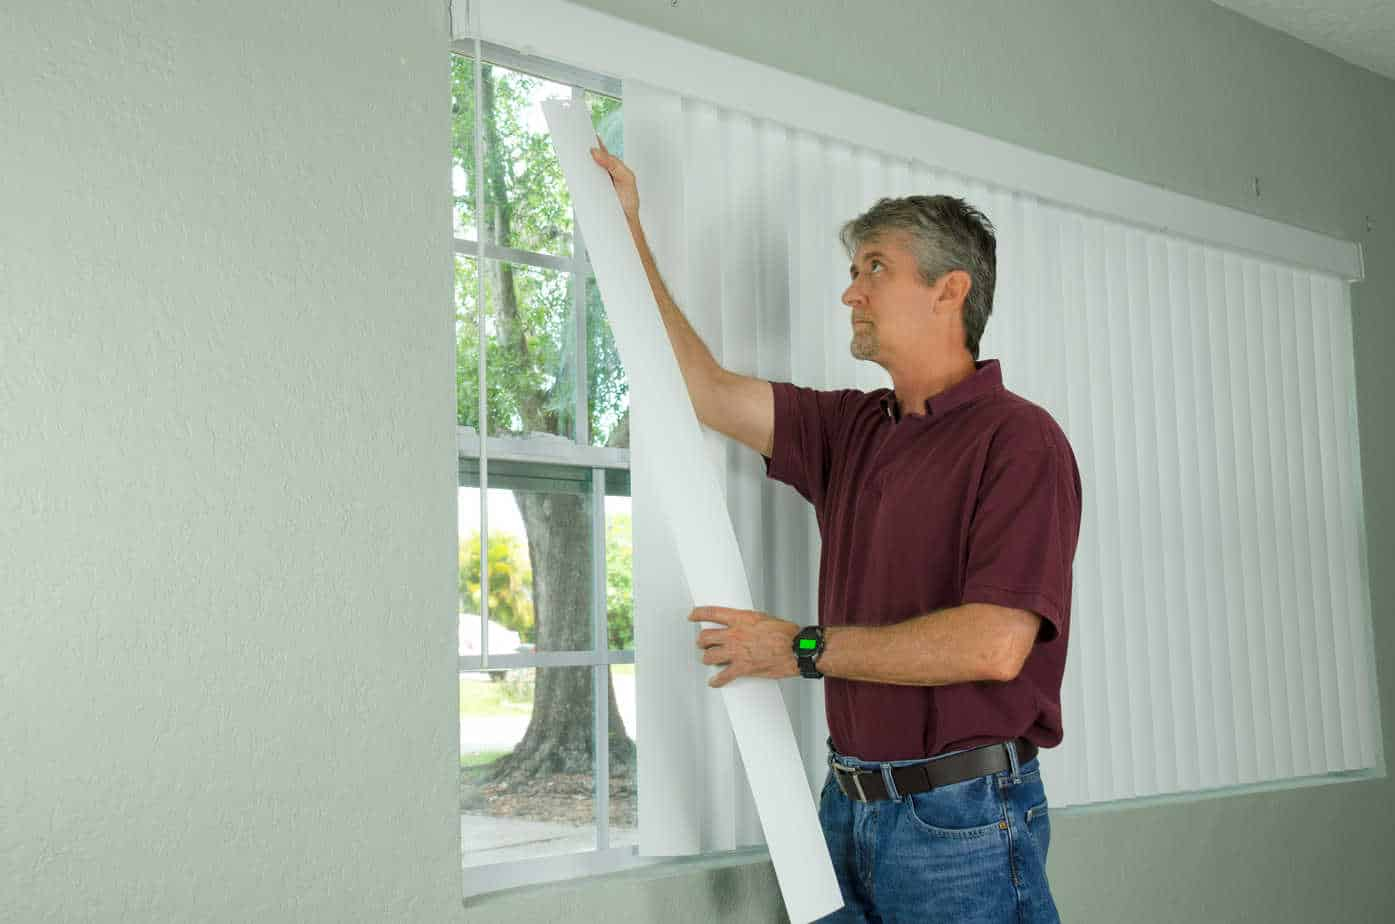 A Diy Guide For Fixing Bent Vertical Blinds